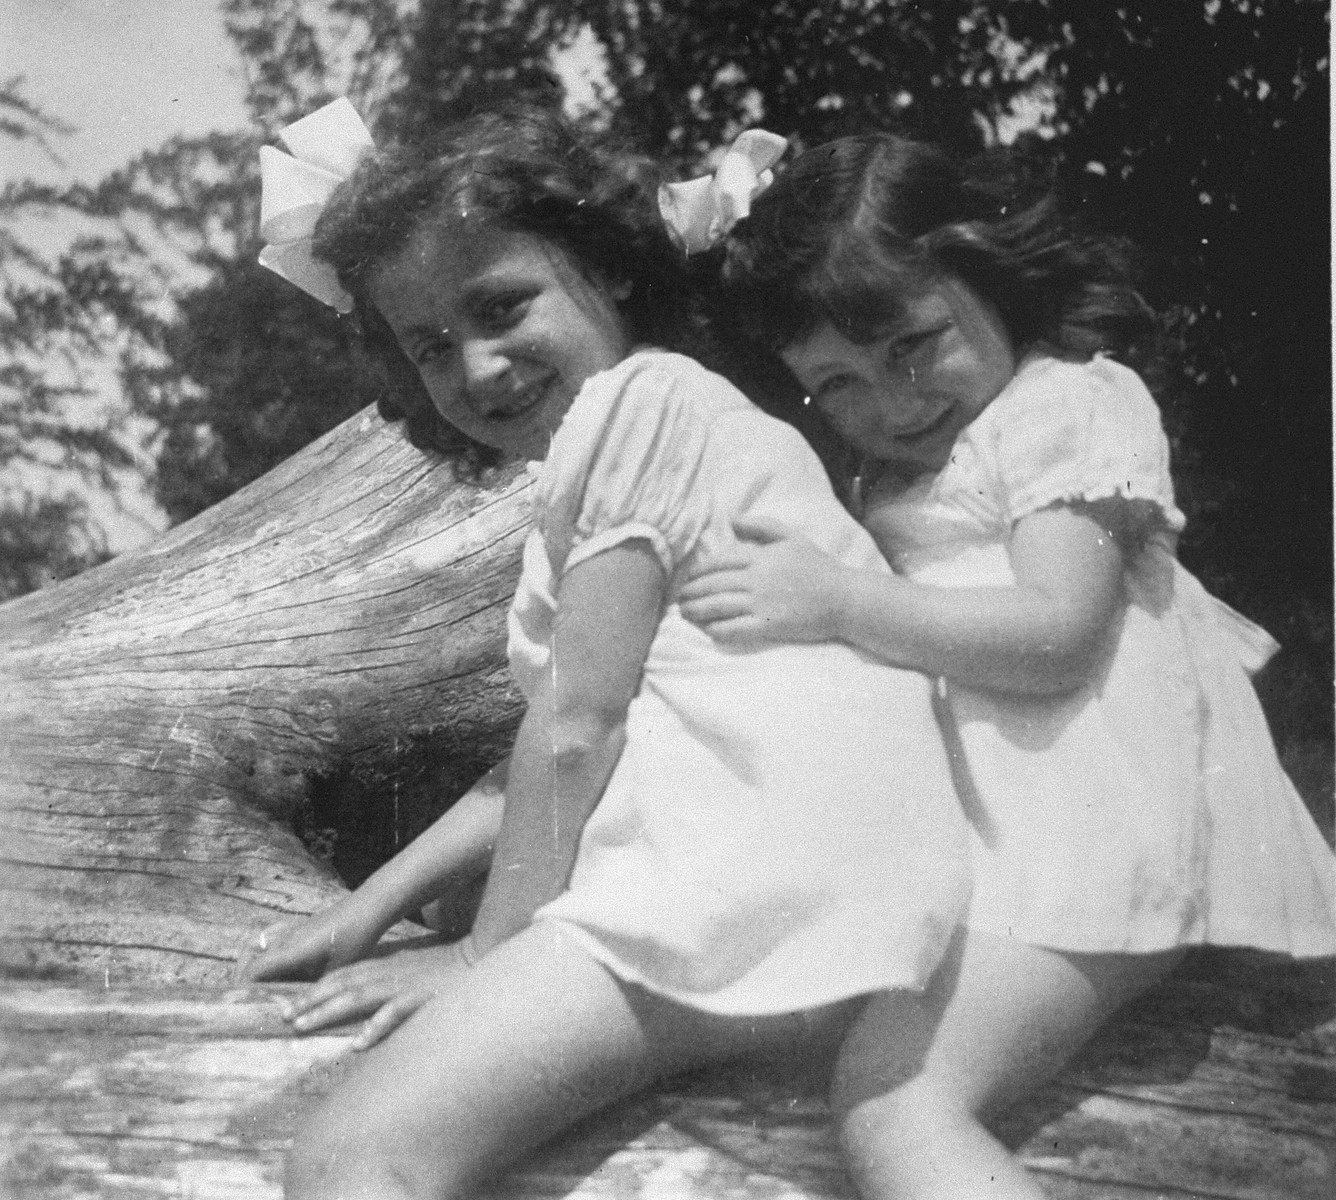 Annette and Margo Lederman, two Jewish children in hiding, pose in a tree on the farm of the van Buggenhout family.